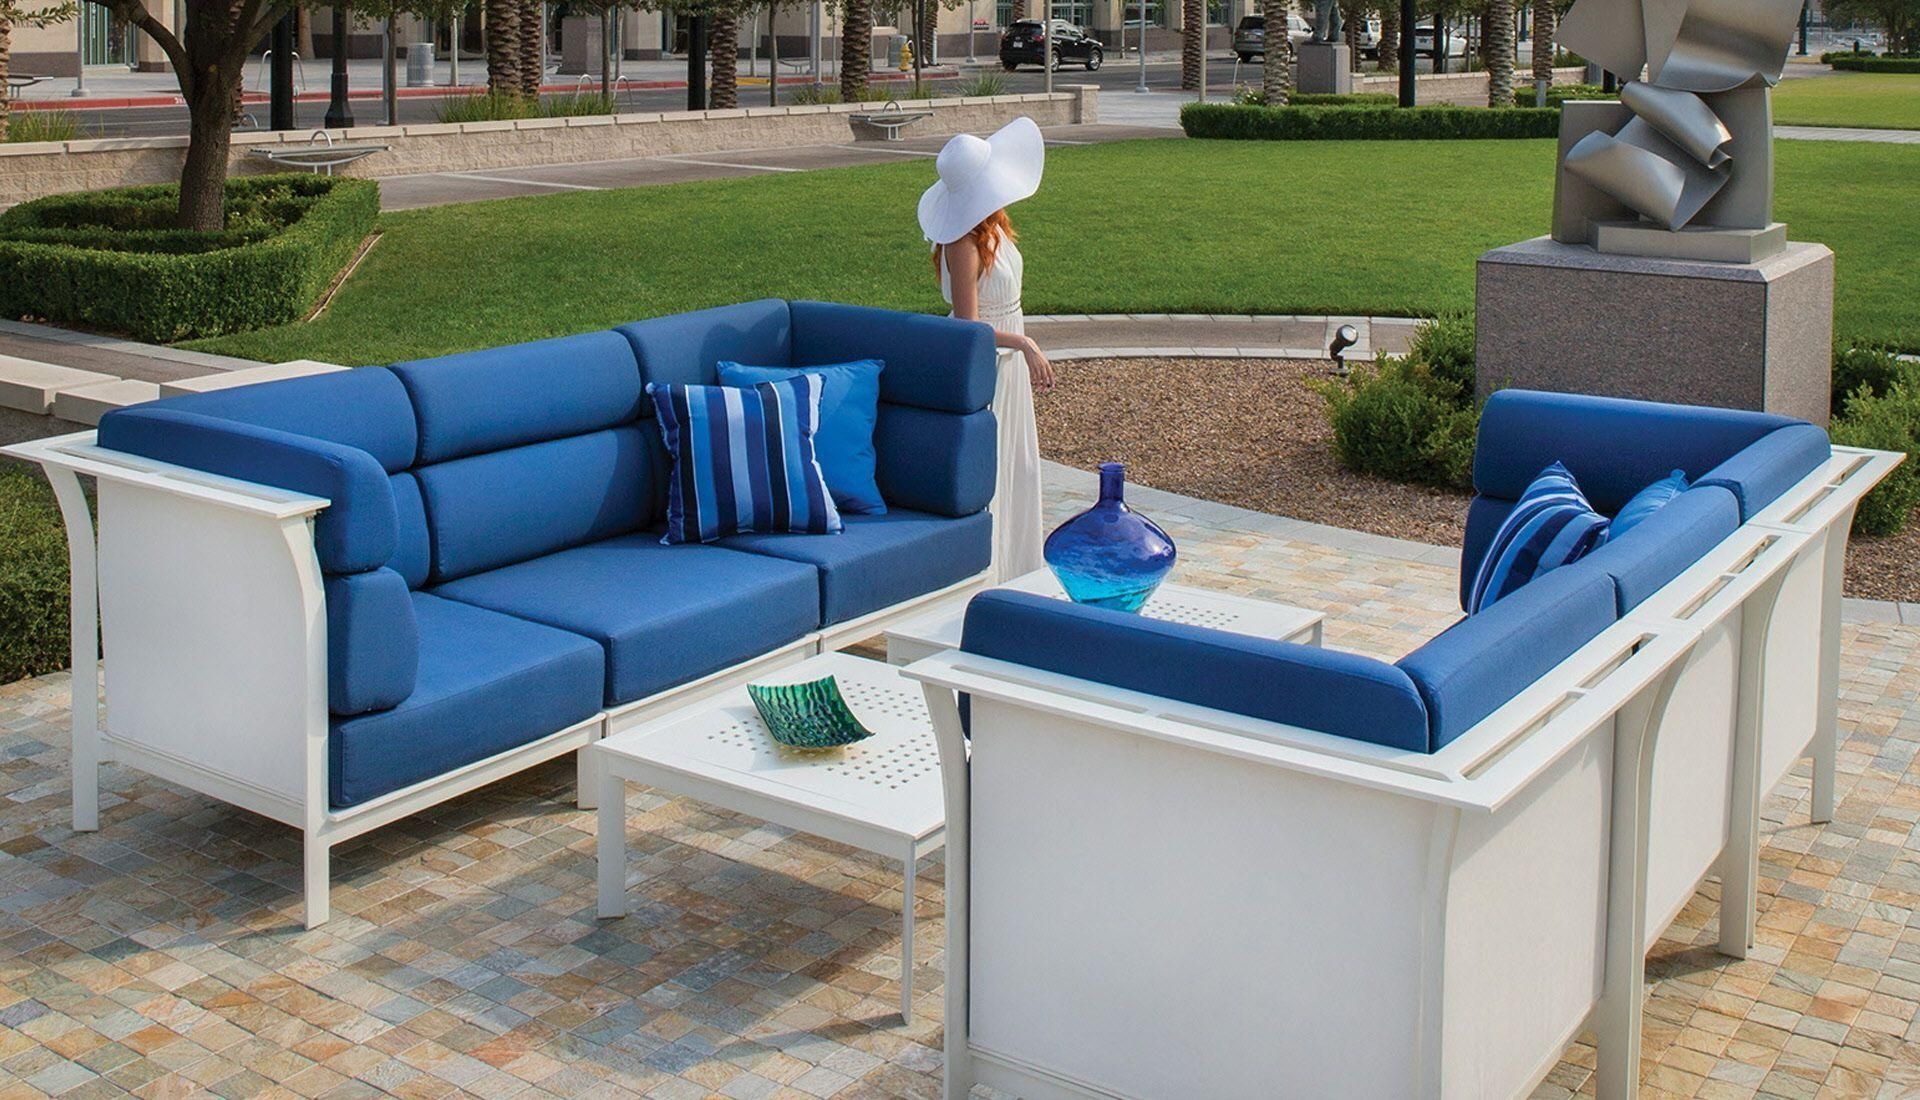 Outdoor Gazebos | Patio Decoration For Garden Sofa Covers (View 20 of 22)